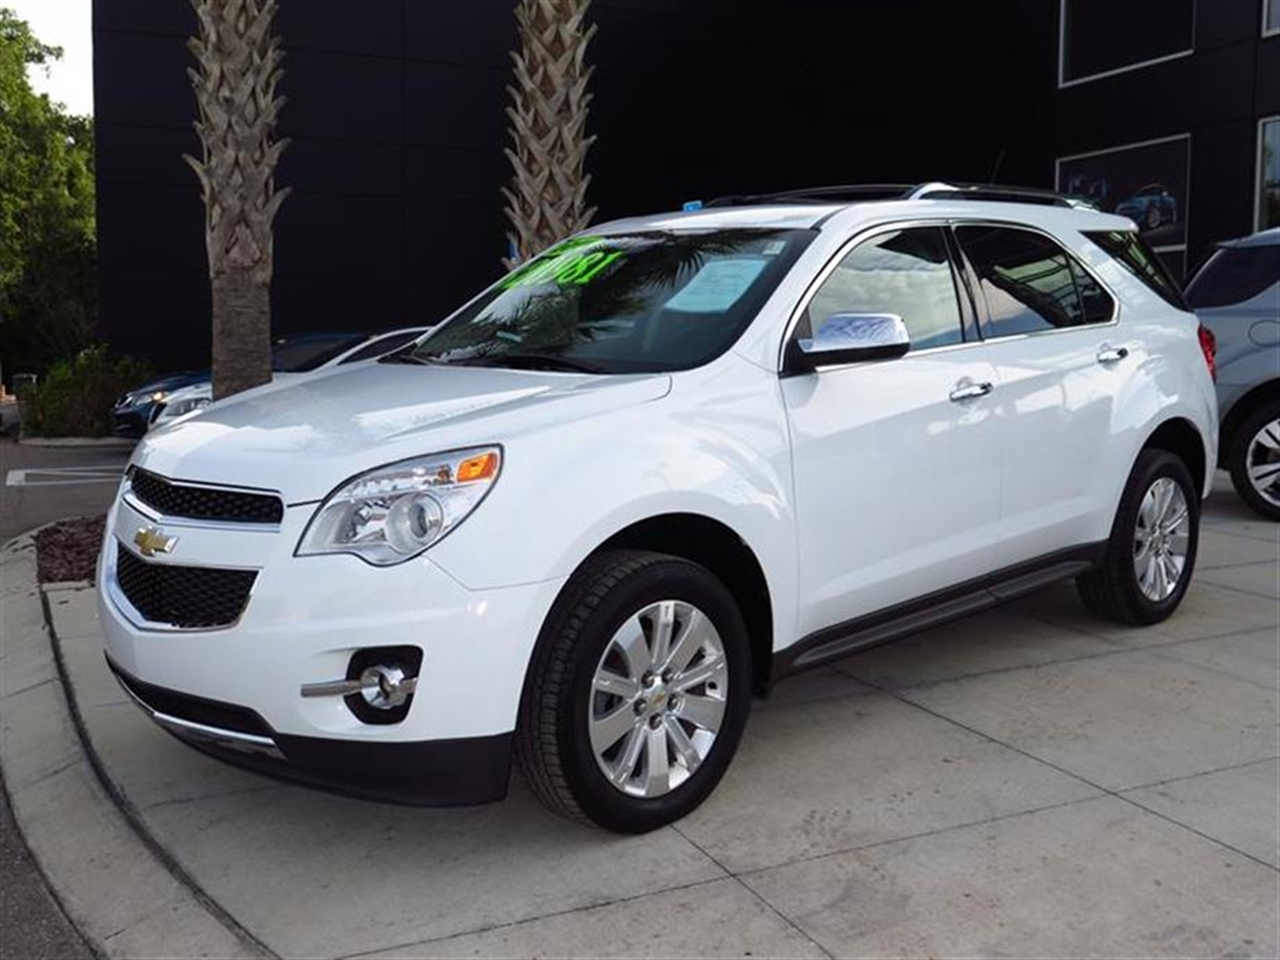 2011 CHEVROLET EQUINOX FWD 4dr LTZ 28654 miles Air conditioning automatic climate control Armres